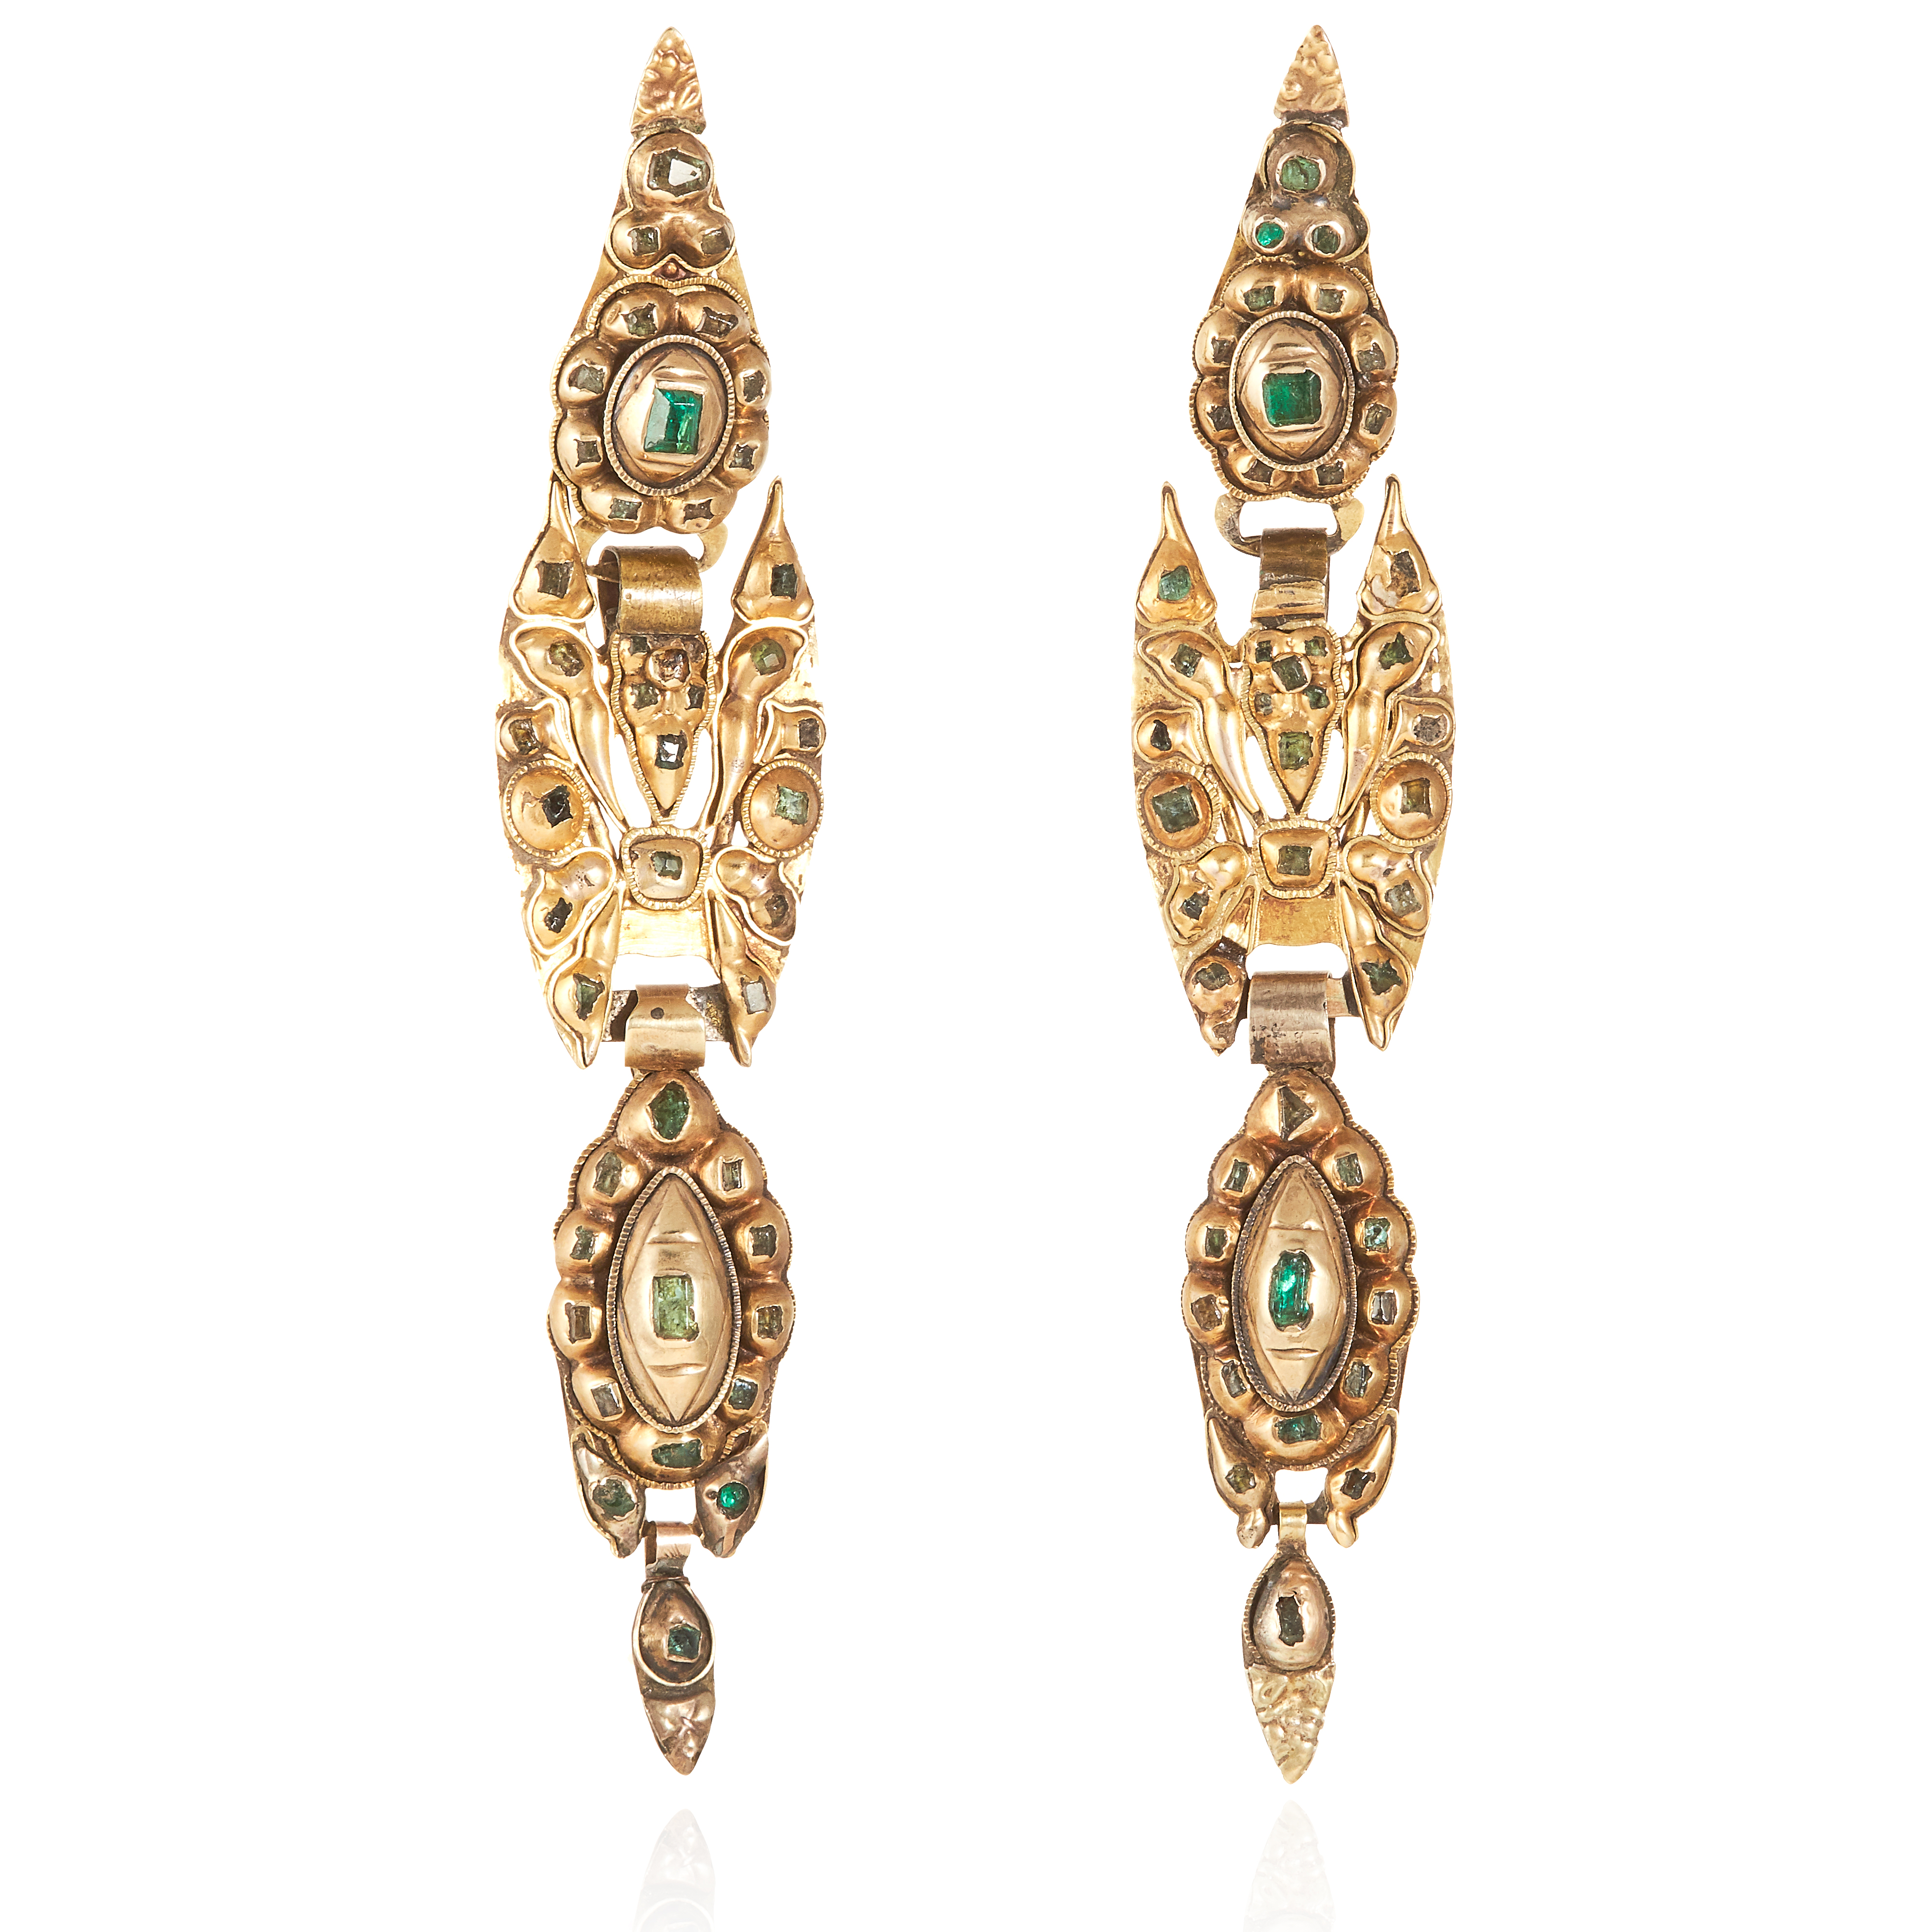 Los 13 - A PAIR OF ANTIQUE CATALAN EMERALD AND DIAMOND EARRINGS, SPANISH CIRCA 1800 in high carat yellow